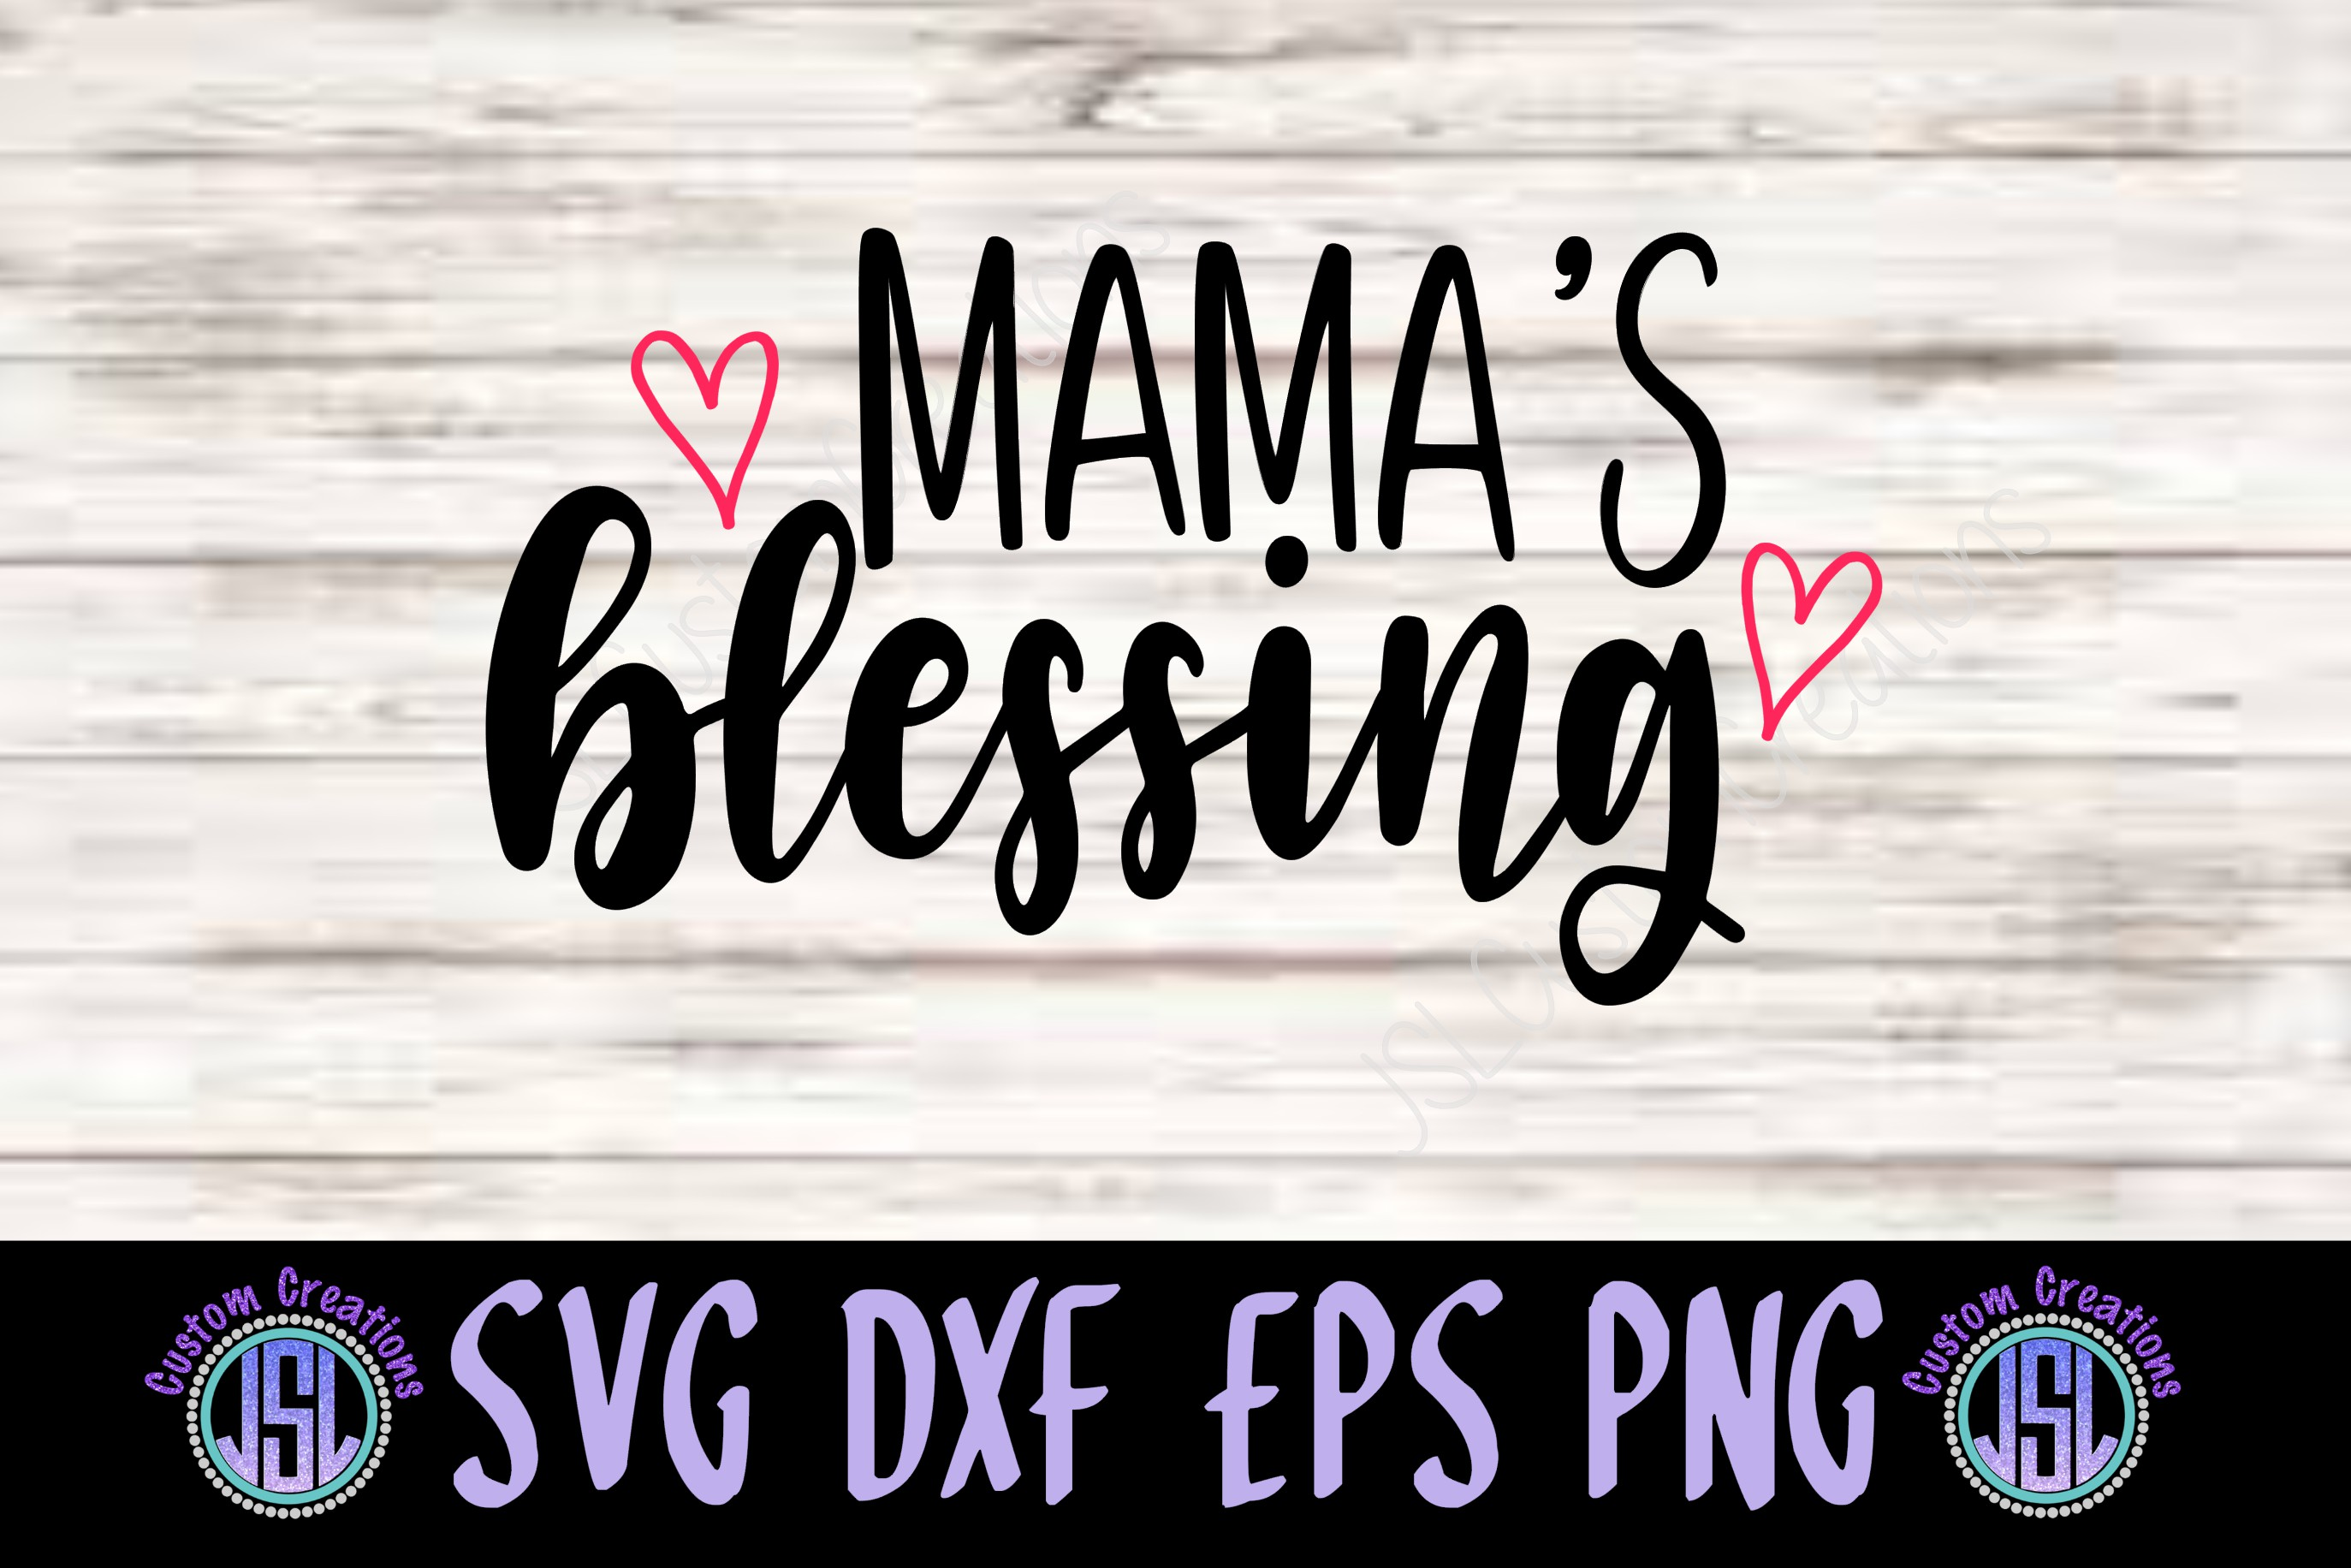 Blessed Mother Daughter Set of 2 | SVG DXF EPS PNG Files example image 4